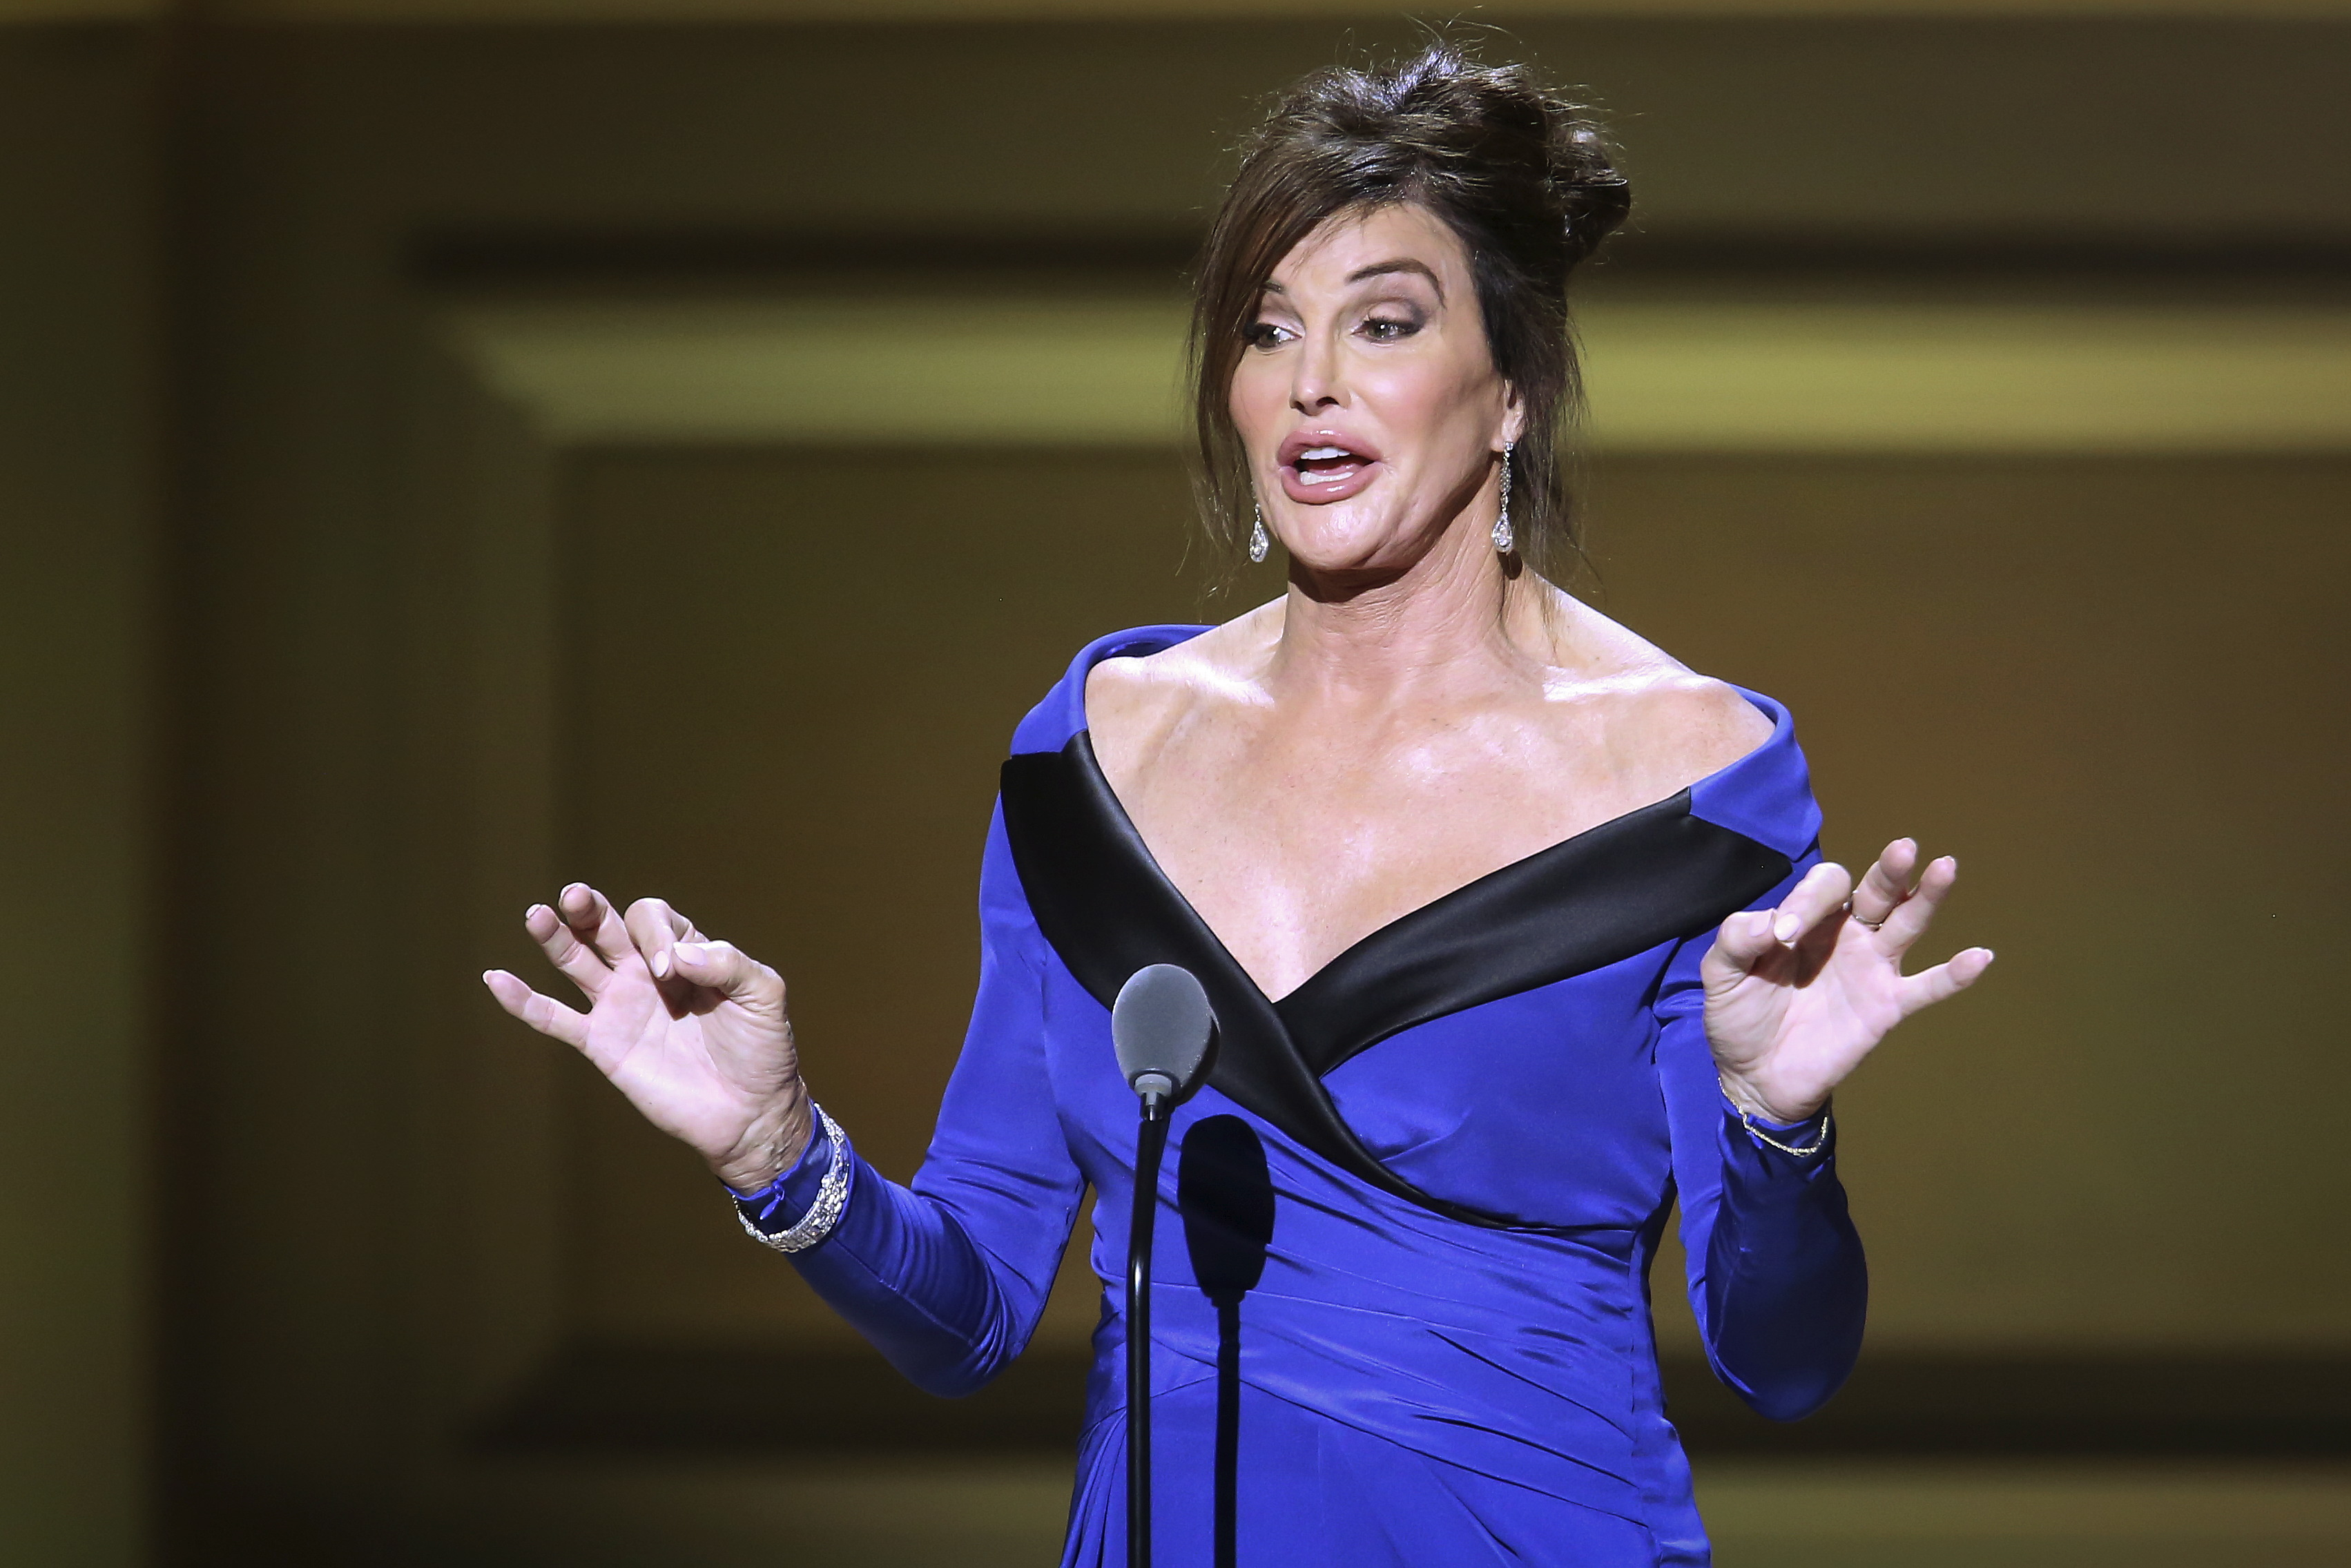 Former Olympian Caitlyn Jenner REUTERS/Carlo Allegri